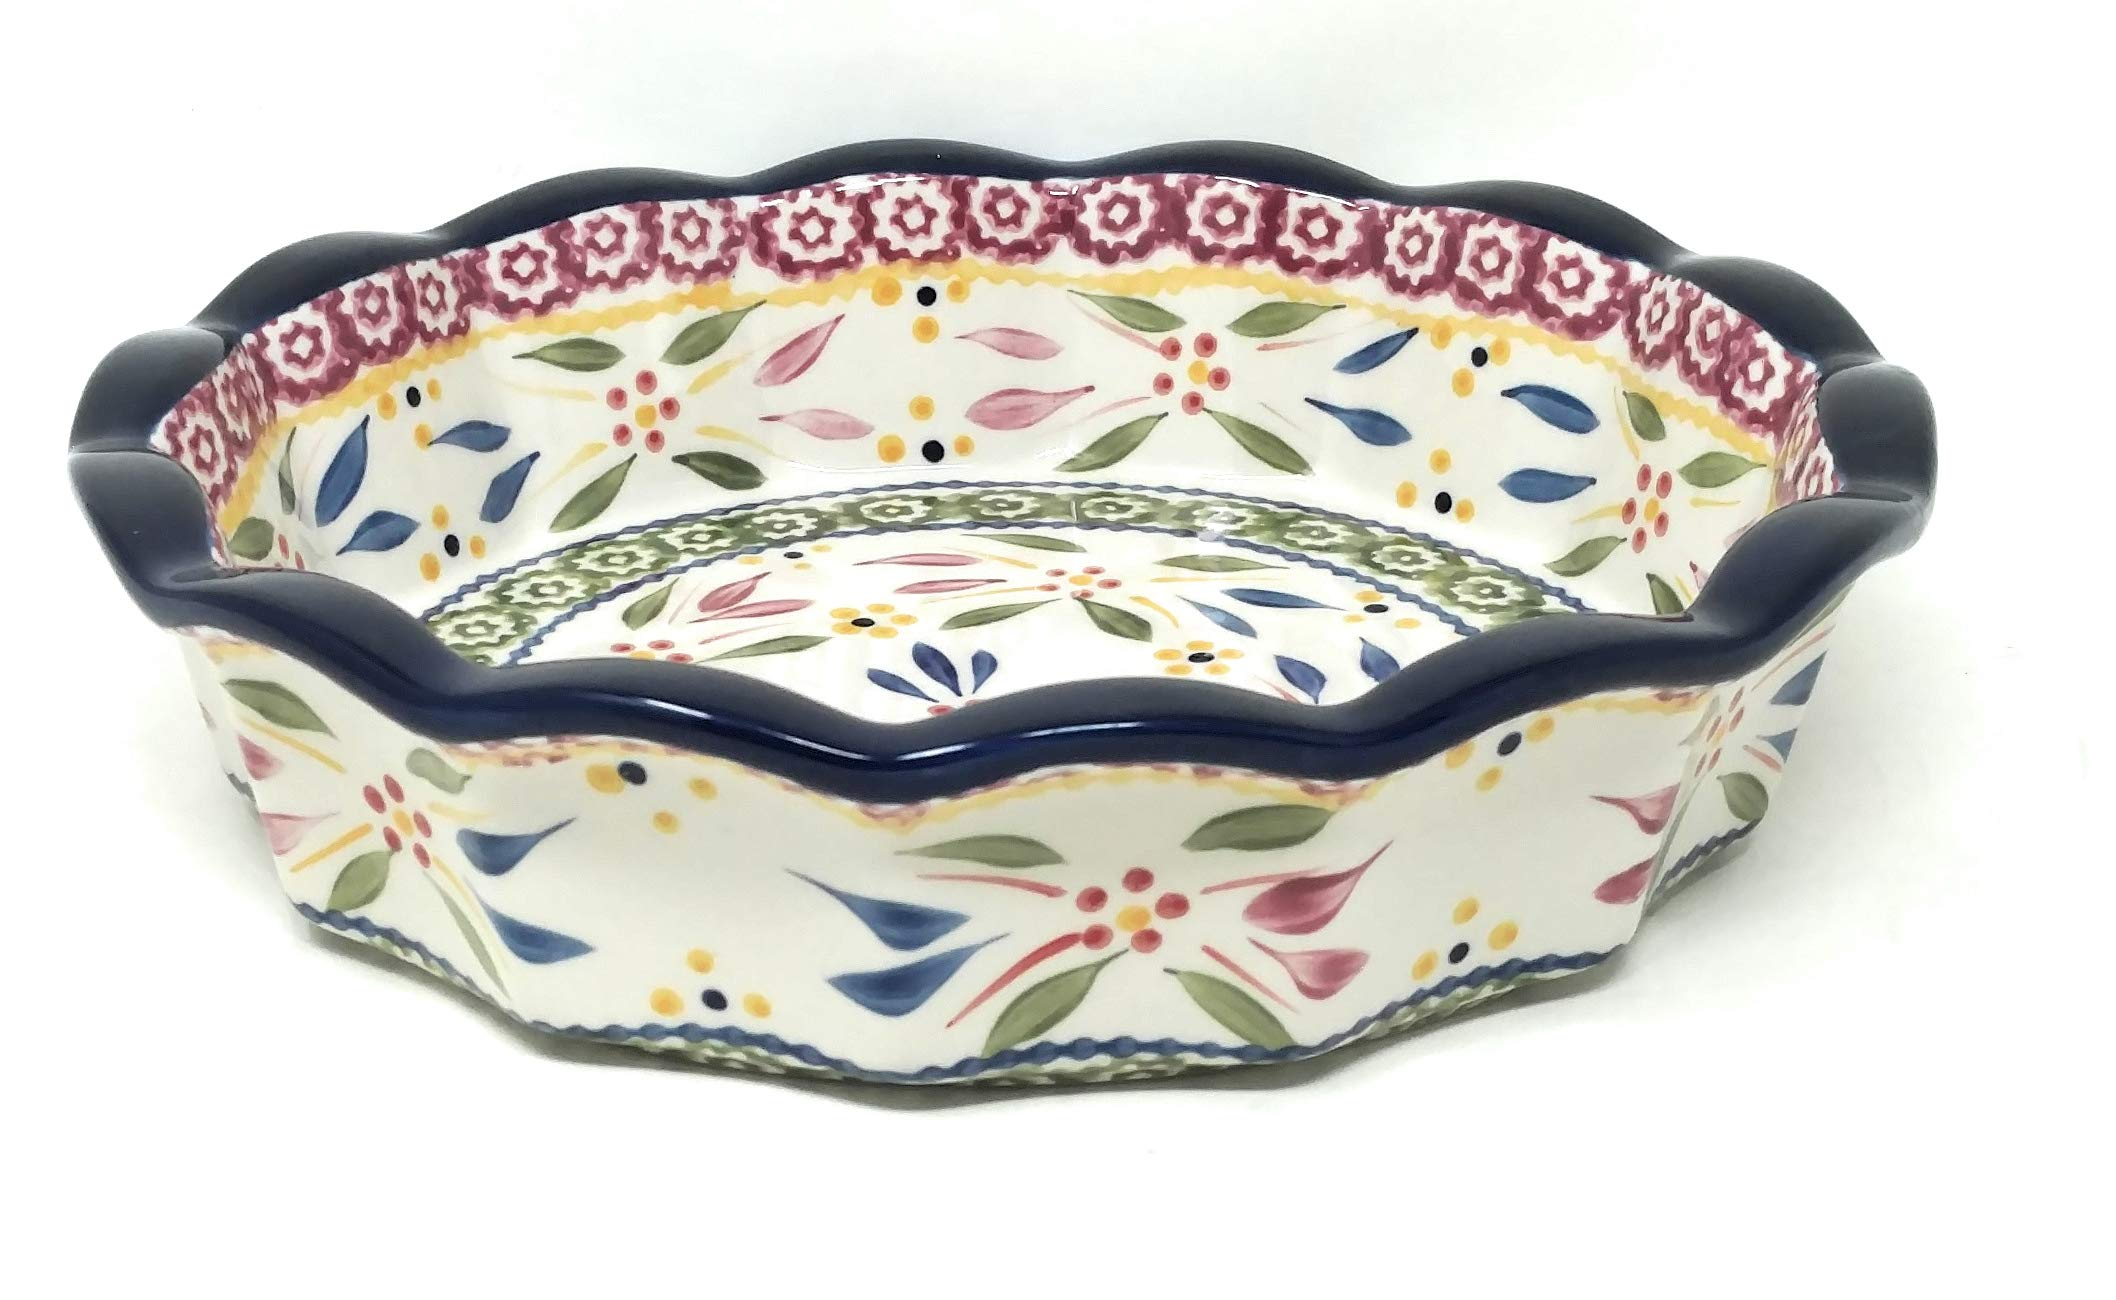 Temp-tations 10'' x 2.25'' Pie Pan w/Cover, Scalloped, Deep Dish Pizza or Quiche (Old World Confetti)